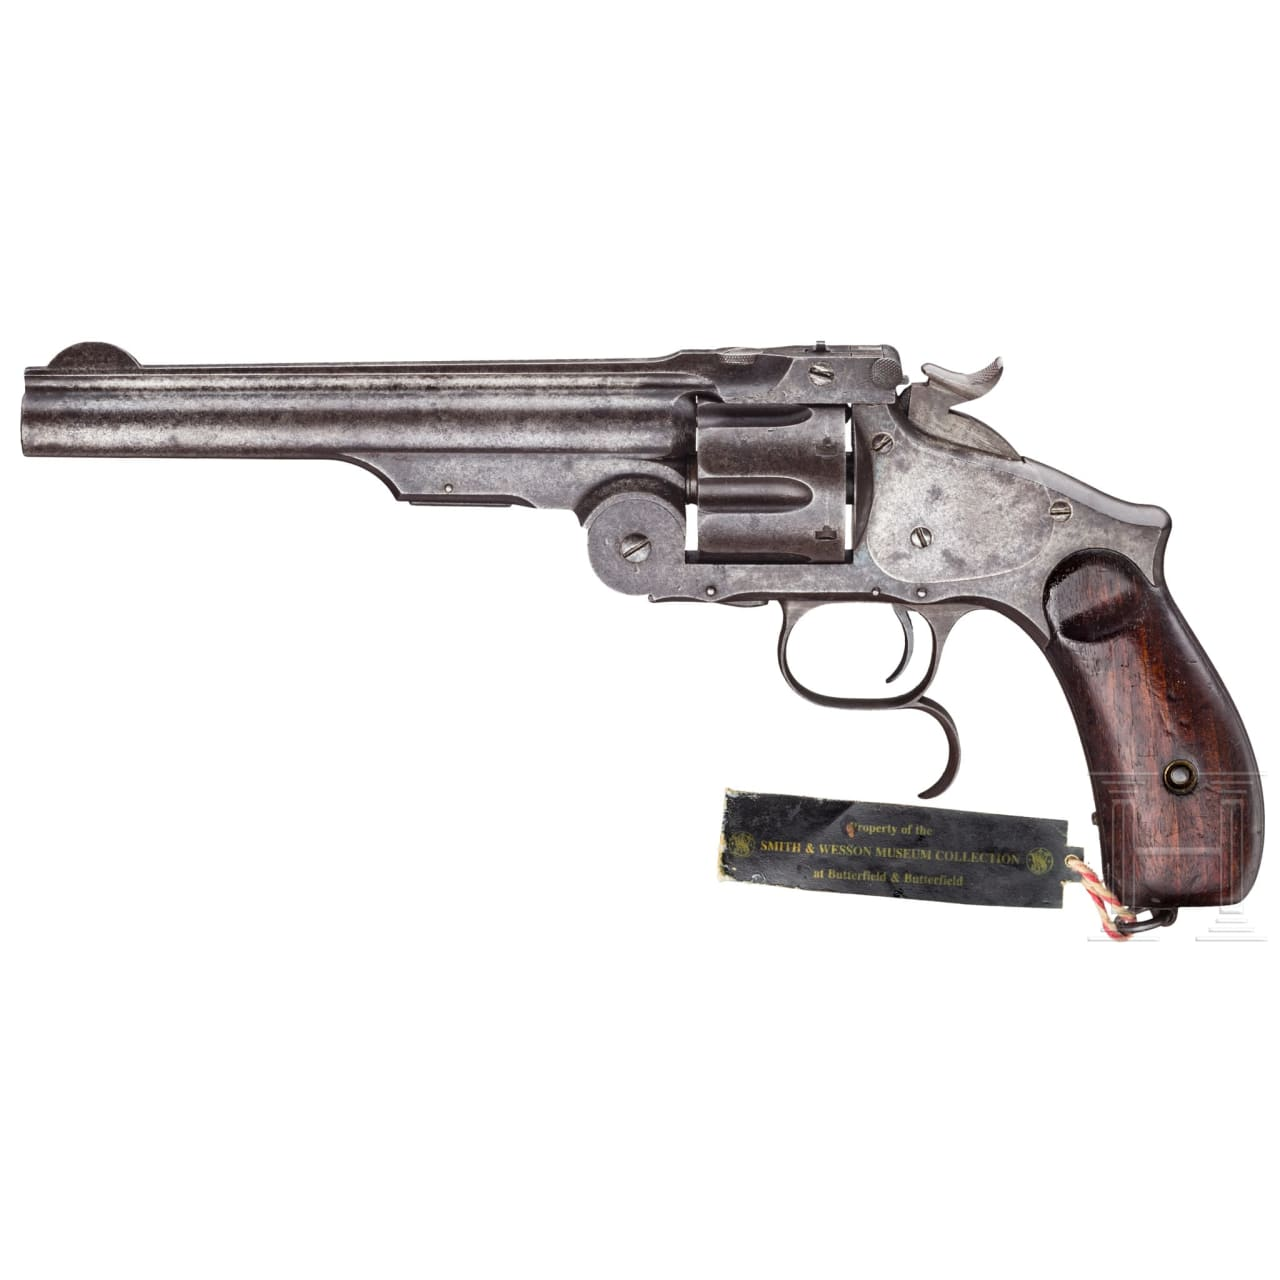 A Smith & Wesson New Model No. 3, Ludwig Loewe, Berlin